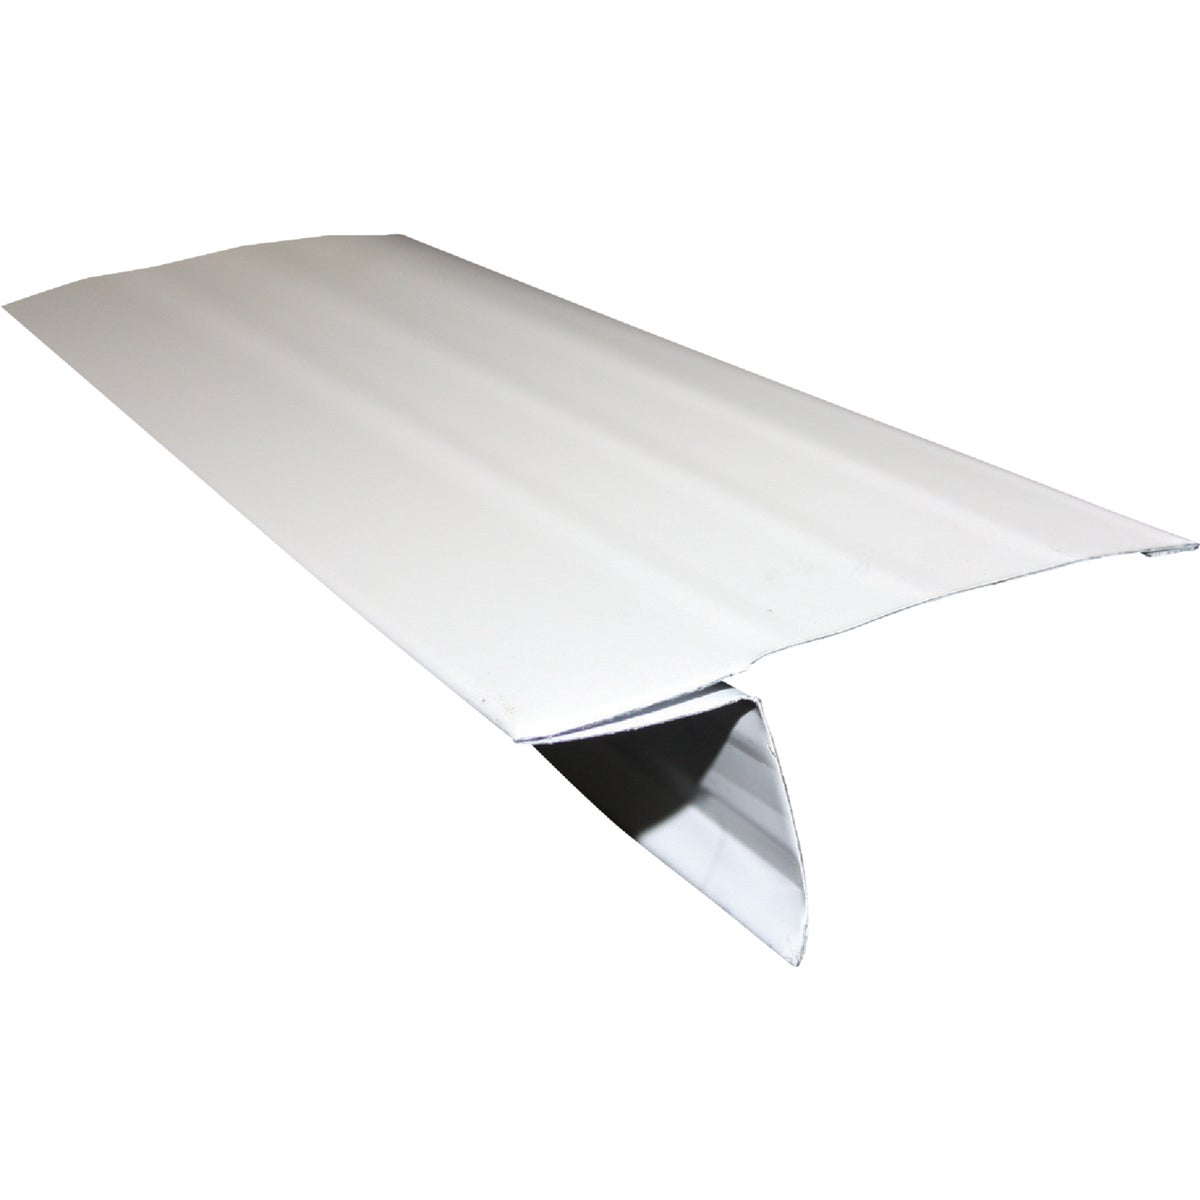 "5""STYLE D WHT ROOF EDGE - 32415-WH20 by Klauer Mfg Co"